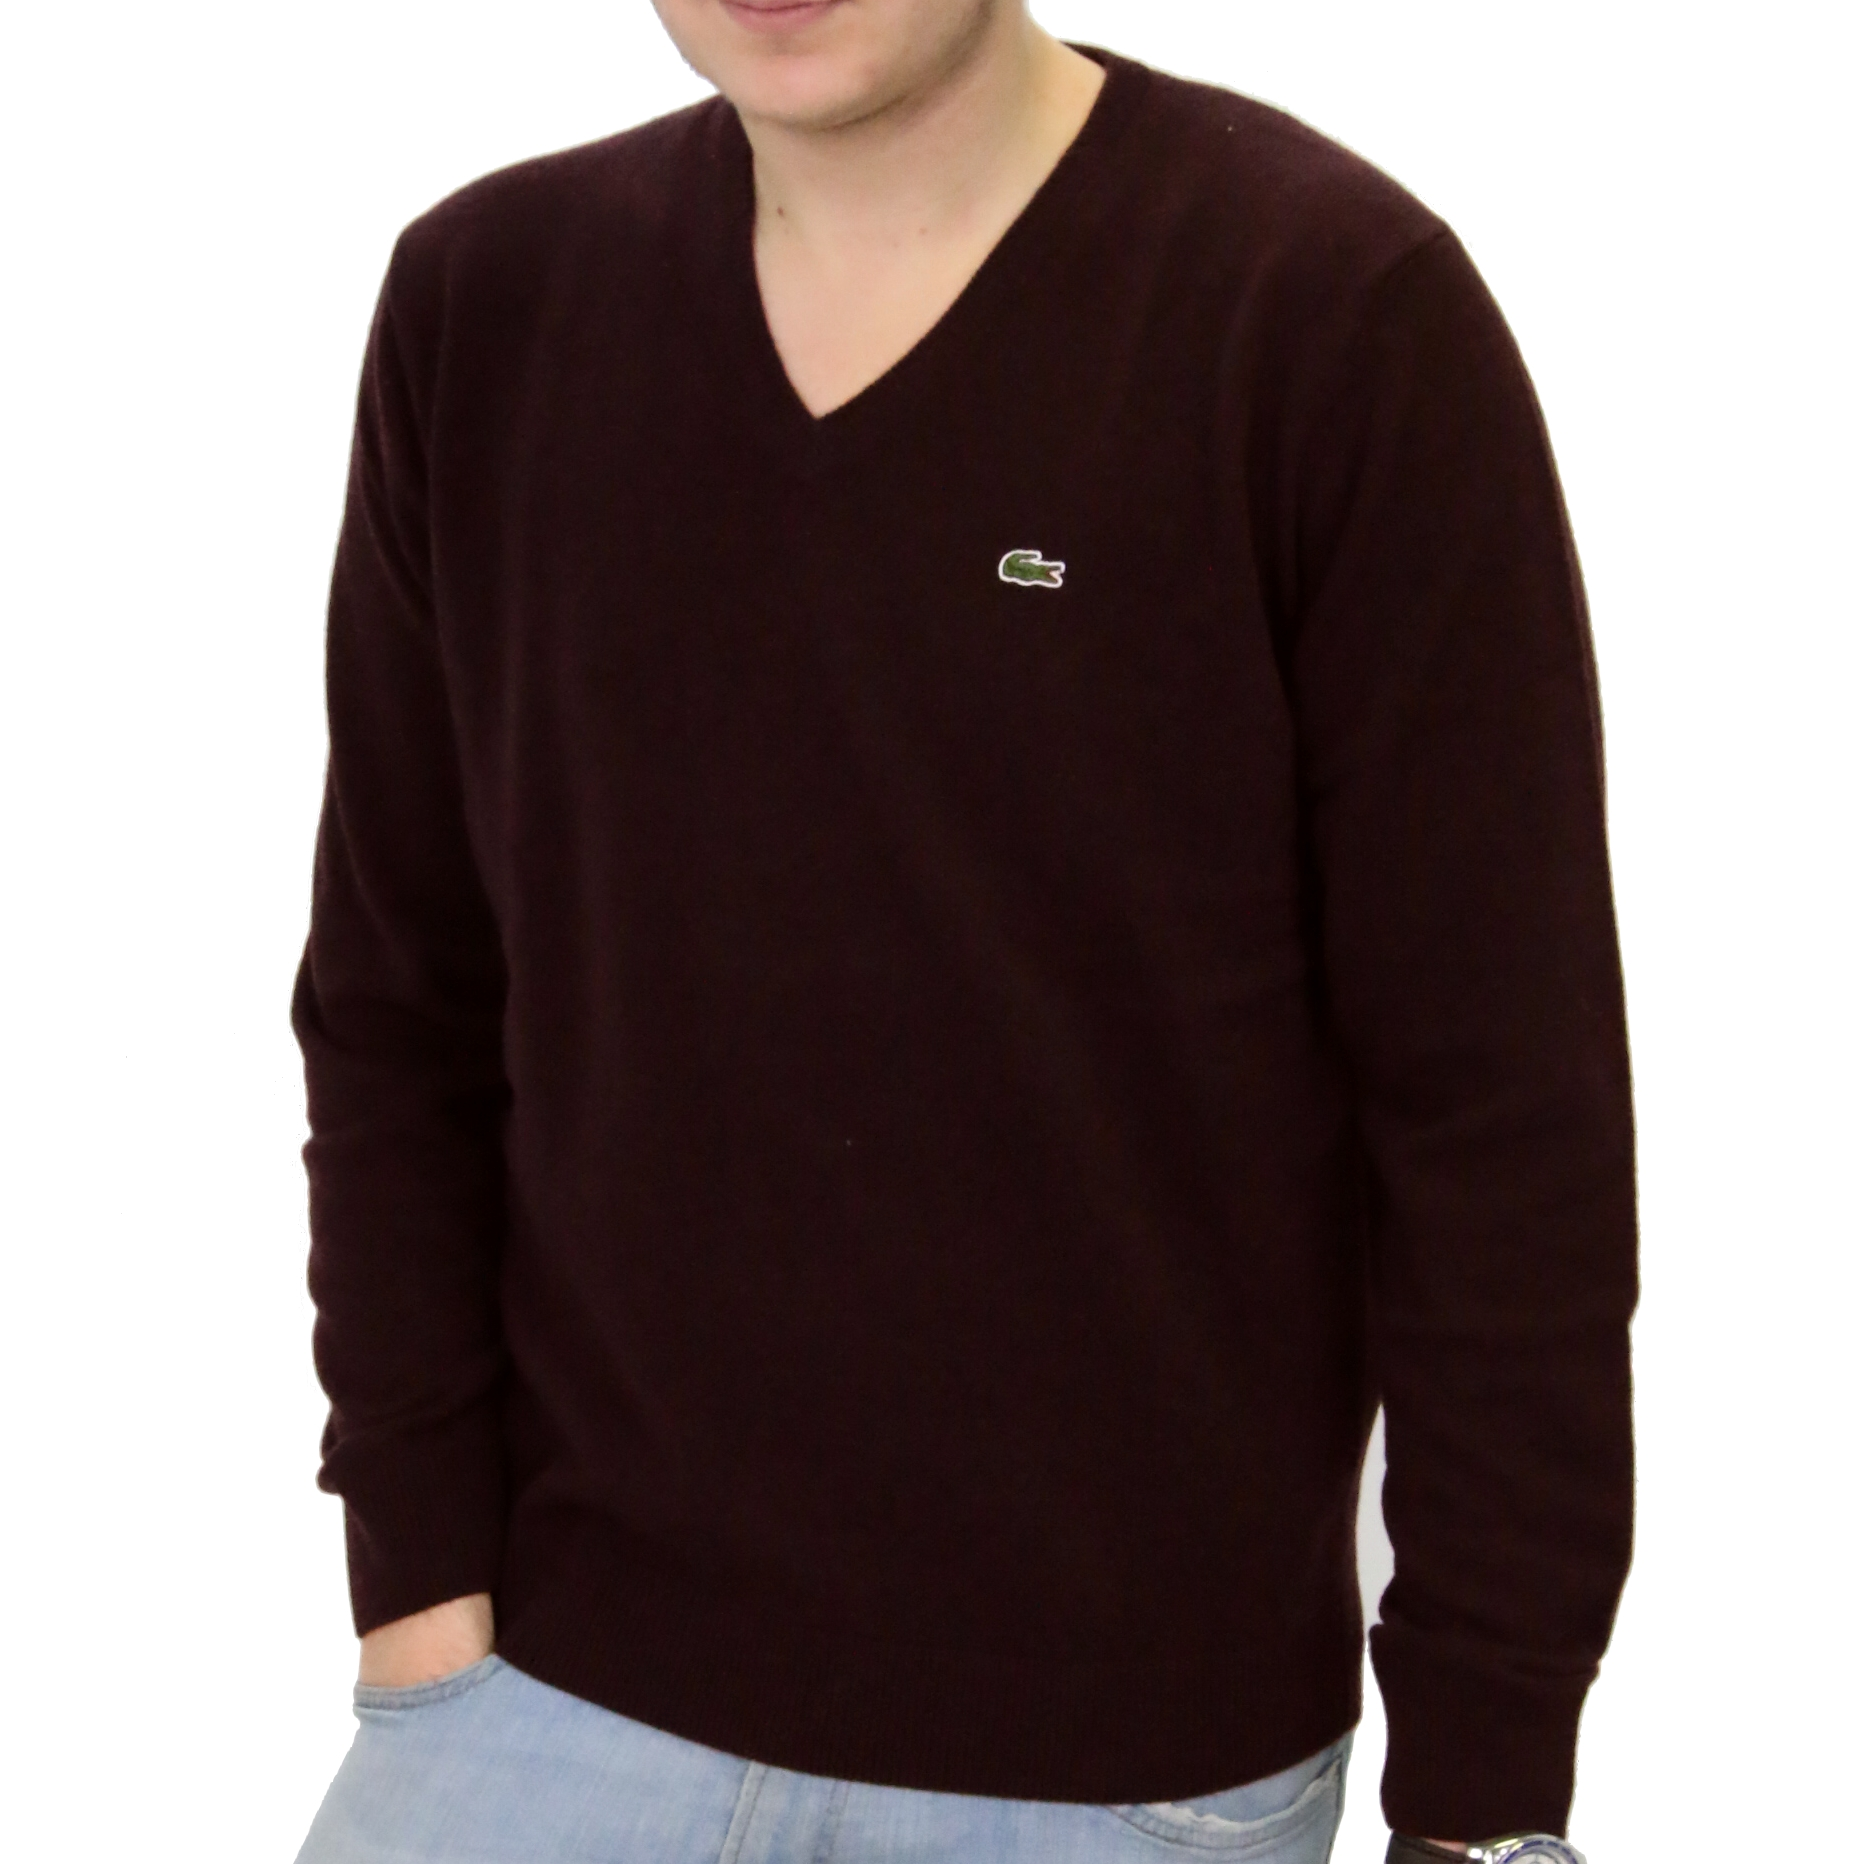 lacoste pullover wollpullover strickpullover v ausschnitt wolle herren ebay. Black Bedroom Furniture Sets. Home Design Ideas